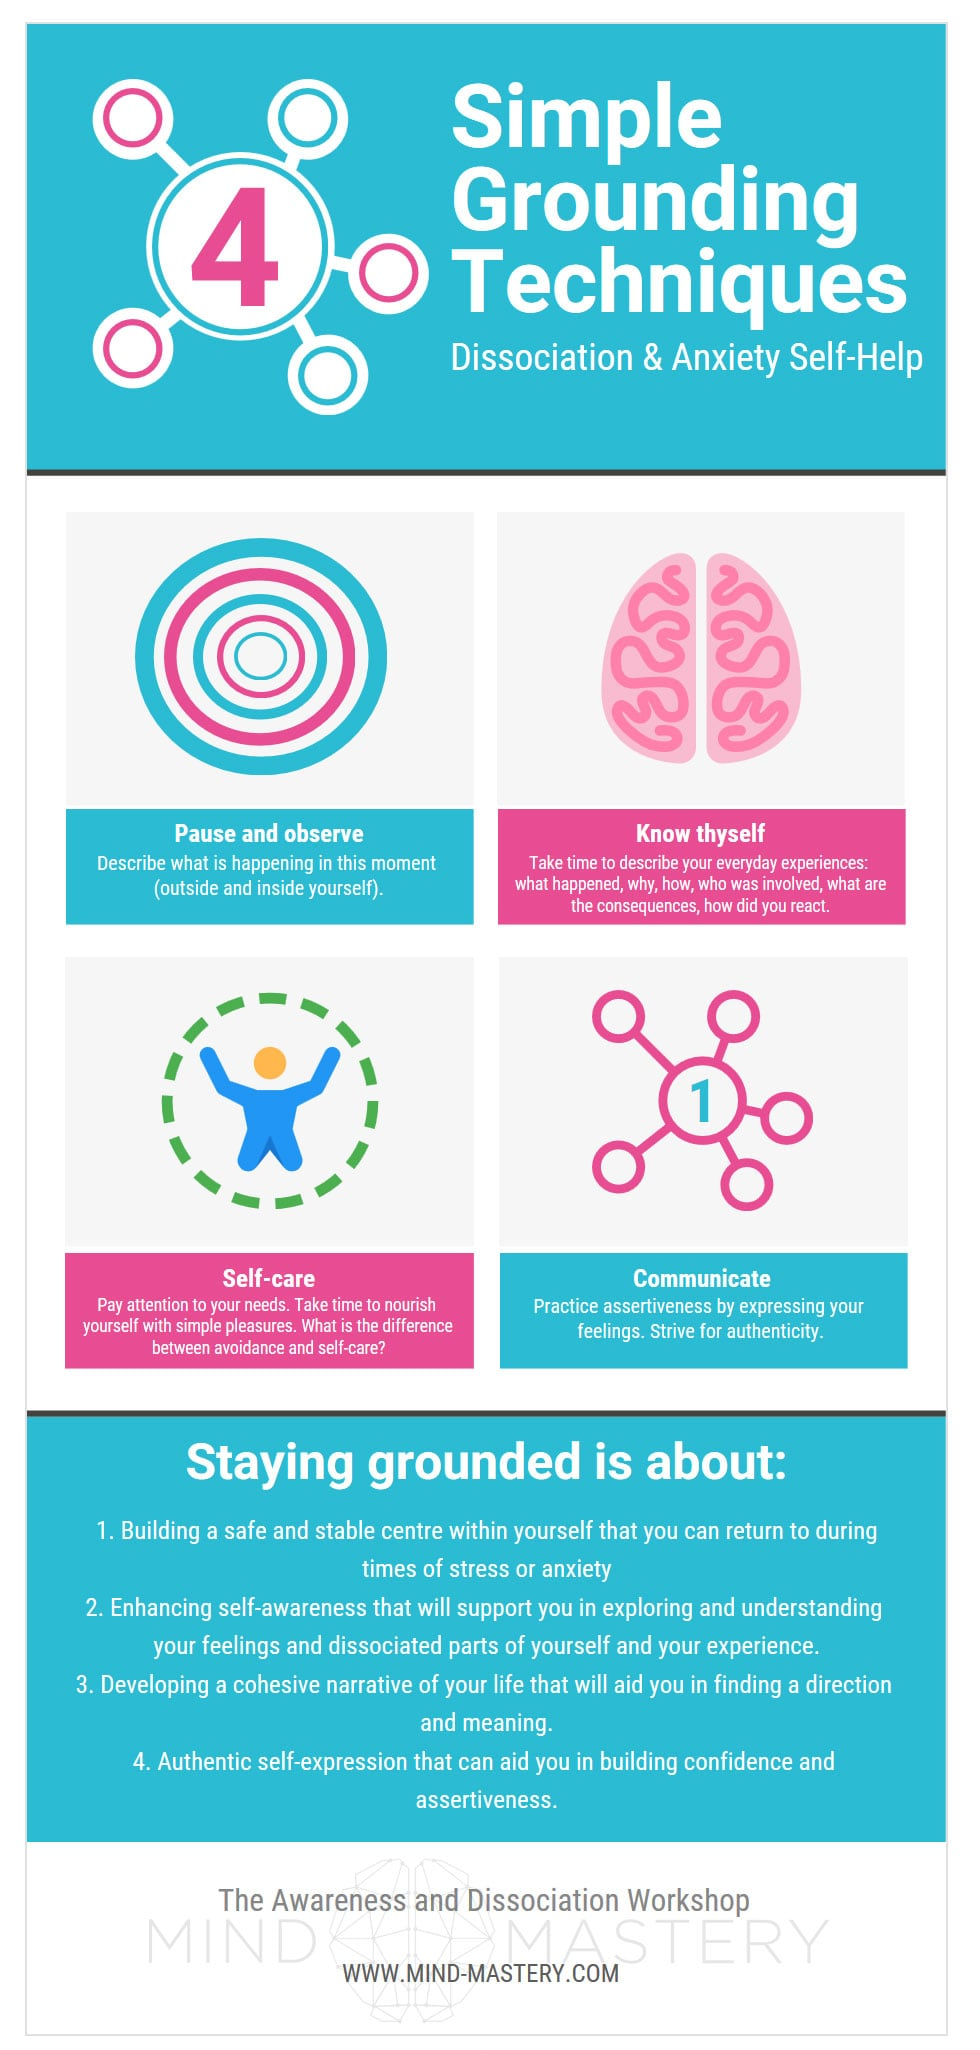 4 Simple Techniques for Staying Grounded